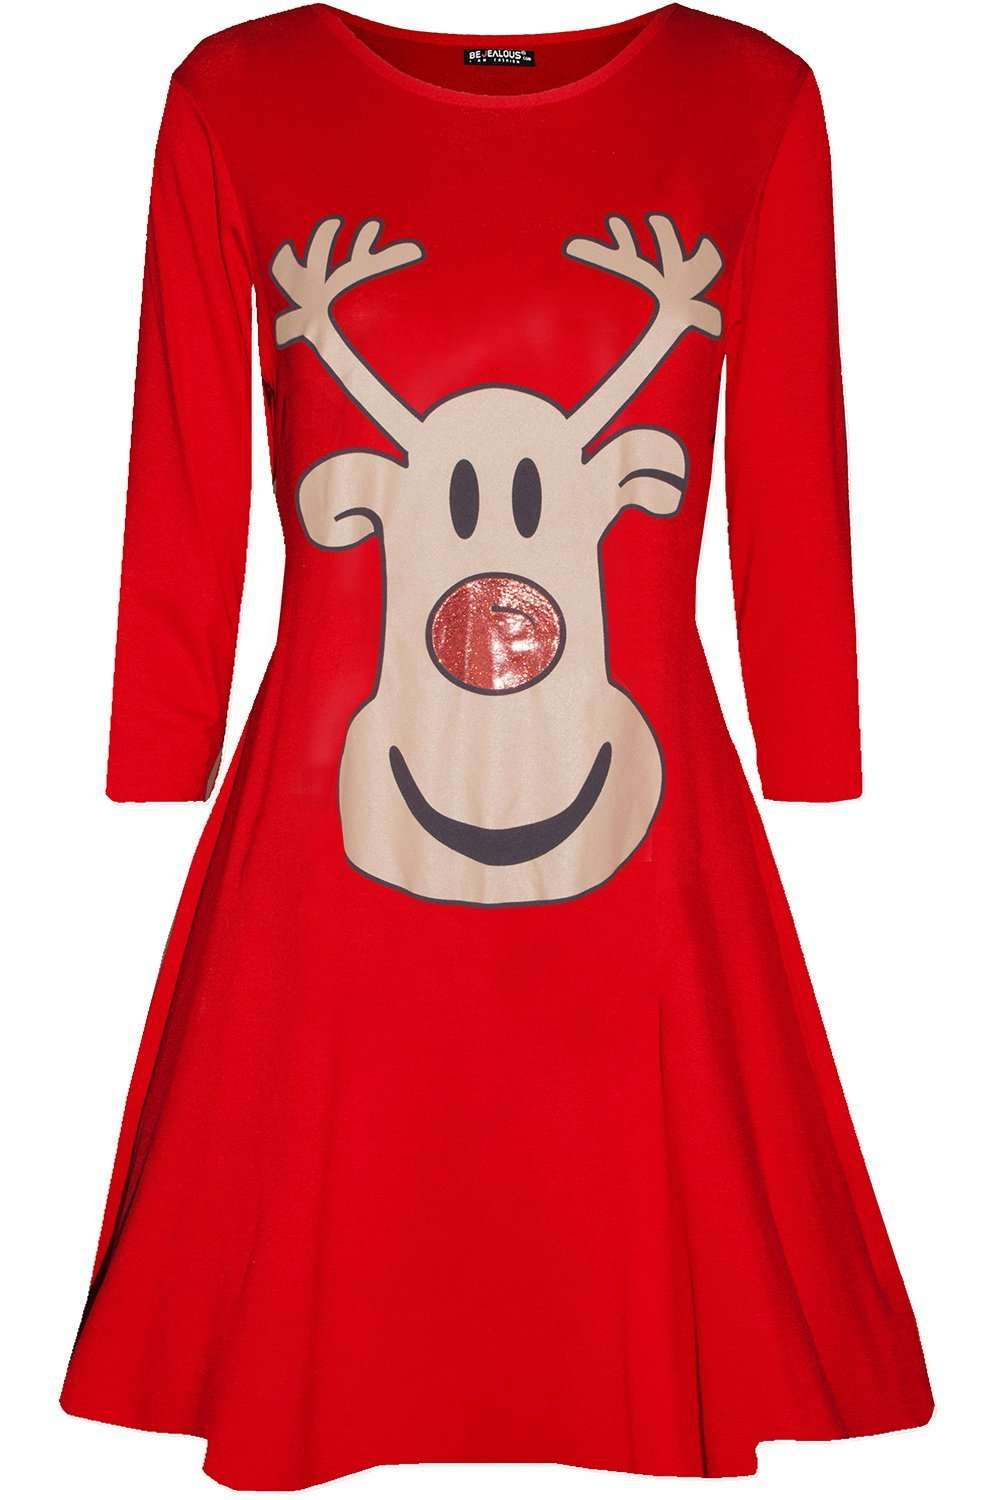 Long Sleeve Christmas Reindeer Print Swing Dress - bejealous-com